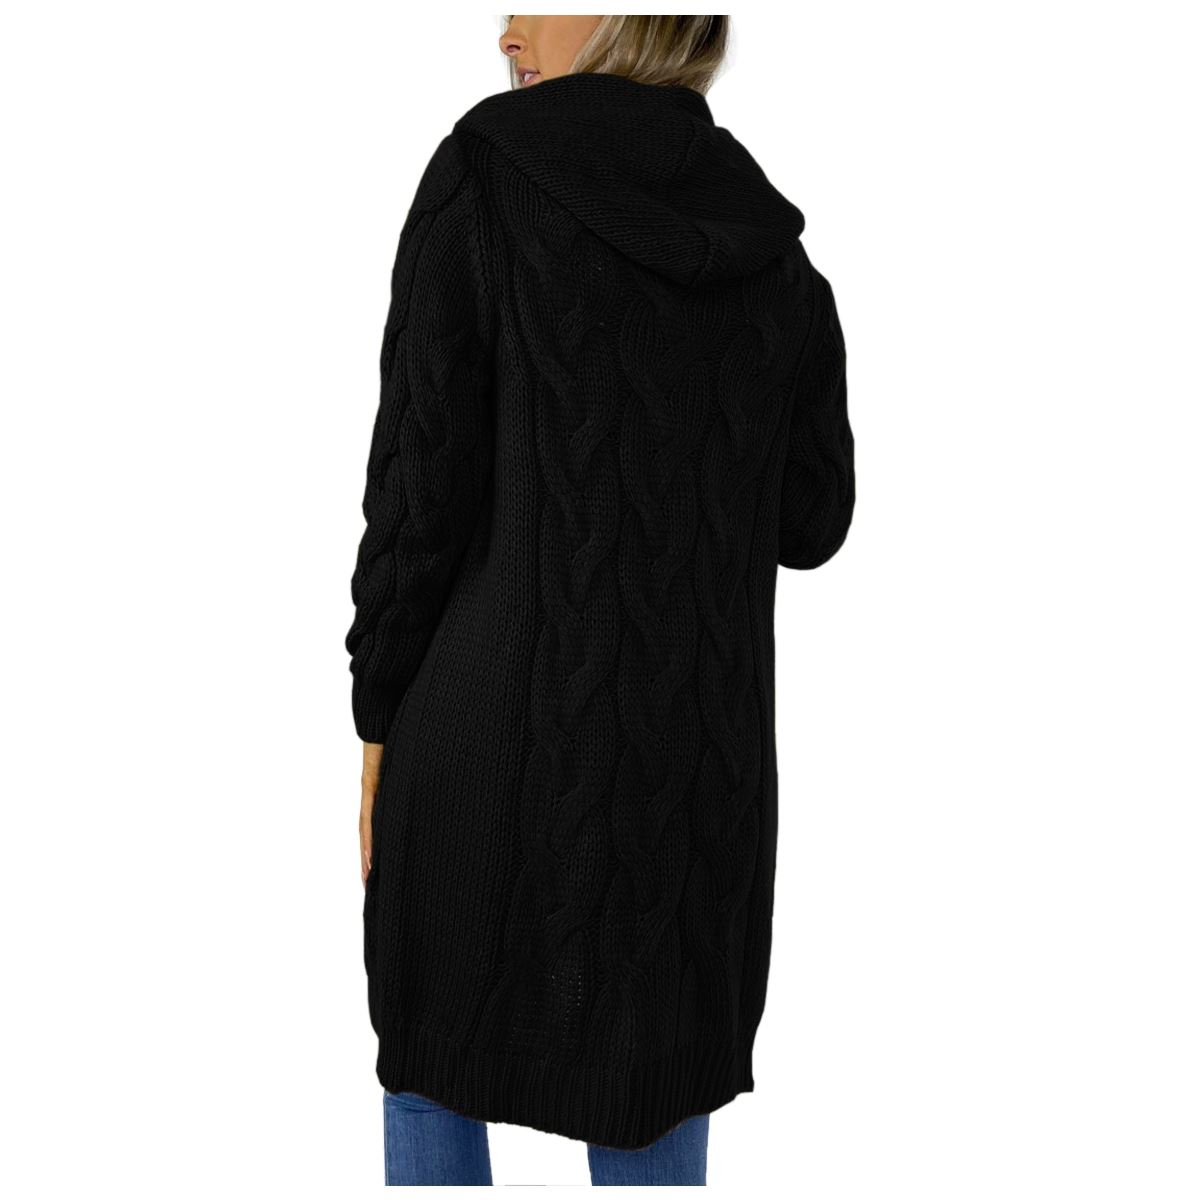 Ladies-Cable-Knitted-Hooded-Open-Longline-Cardigan-Winter-Oversized-Jacket-Top thumbnail 4